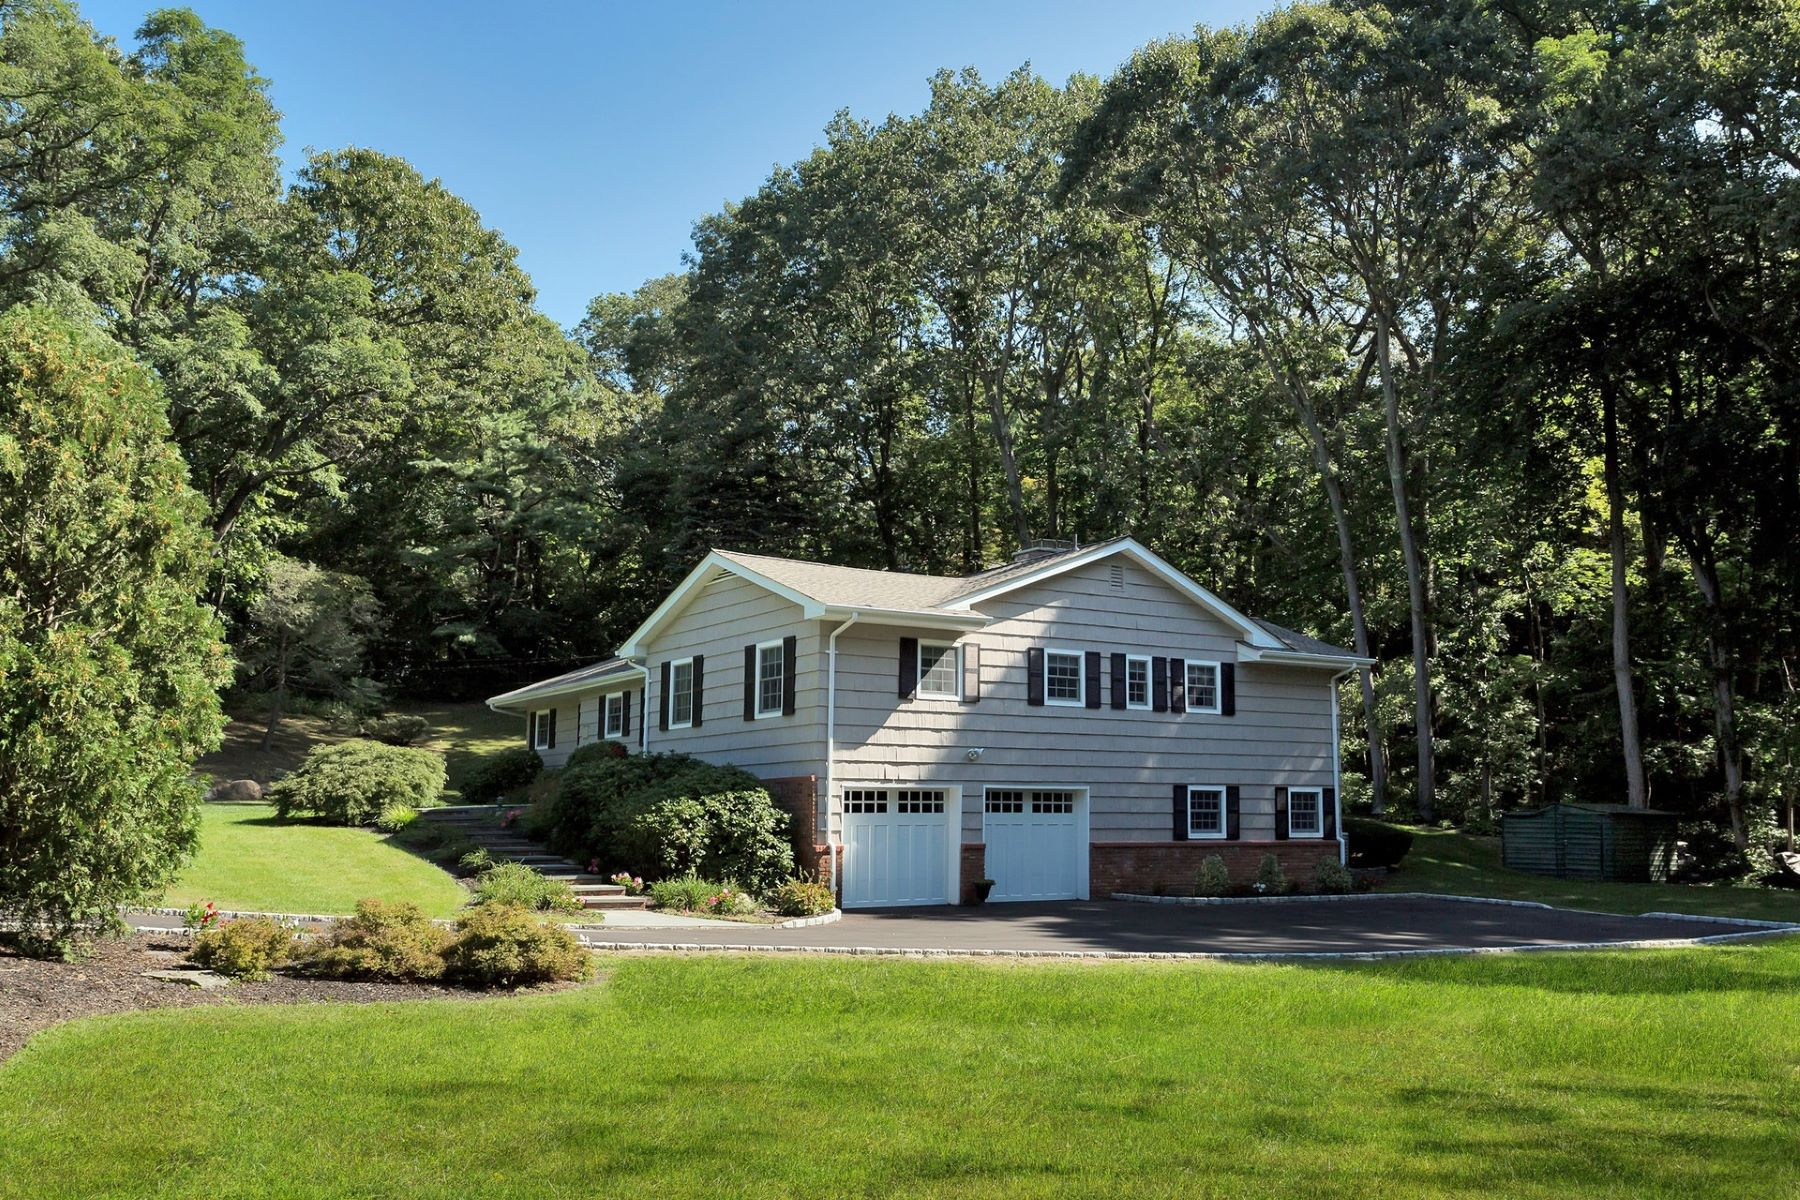 Single Family Homes for Active at Huntington 30 Cove Rd Huntington, New York 11743 United States